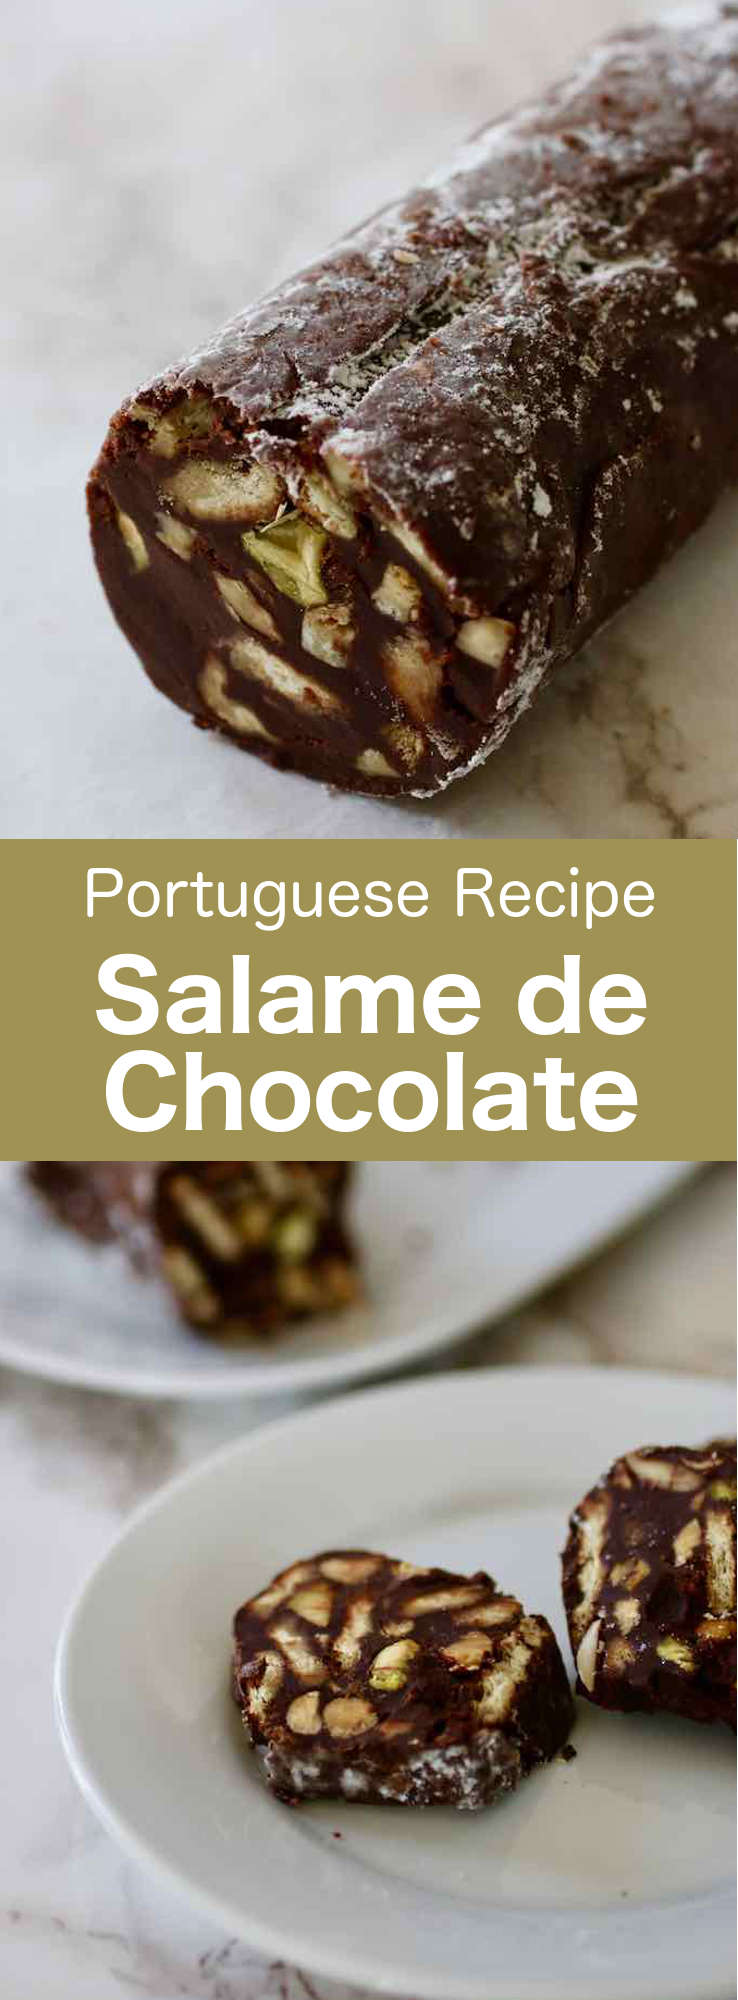 Salame de chocolate (or chocolate salami) is a deliciously decadent Portuguese and Italian dessert specialty prepared with chocolate, biscuits, butter and eggs. #Portugal #PortugueseRecipe #Dessert #Cake #ChocolateRecipe #WorldCuisine #196flavors